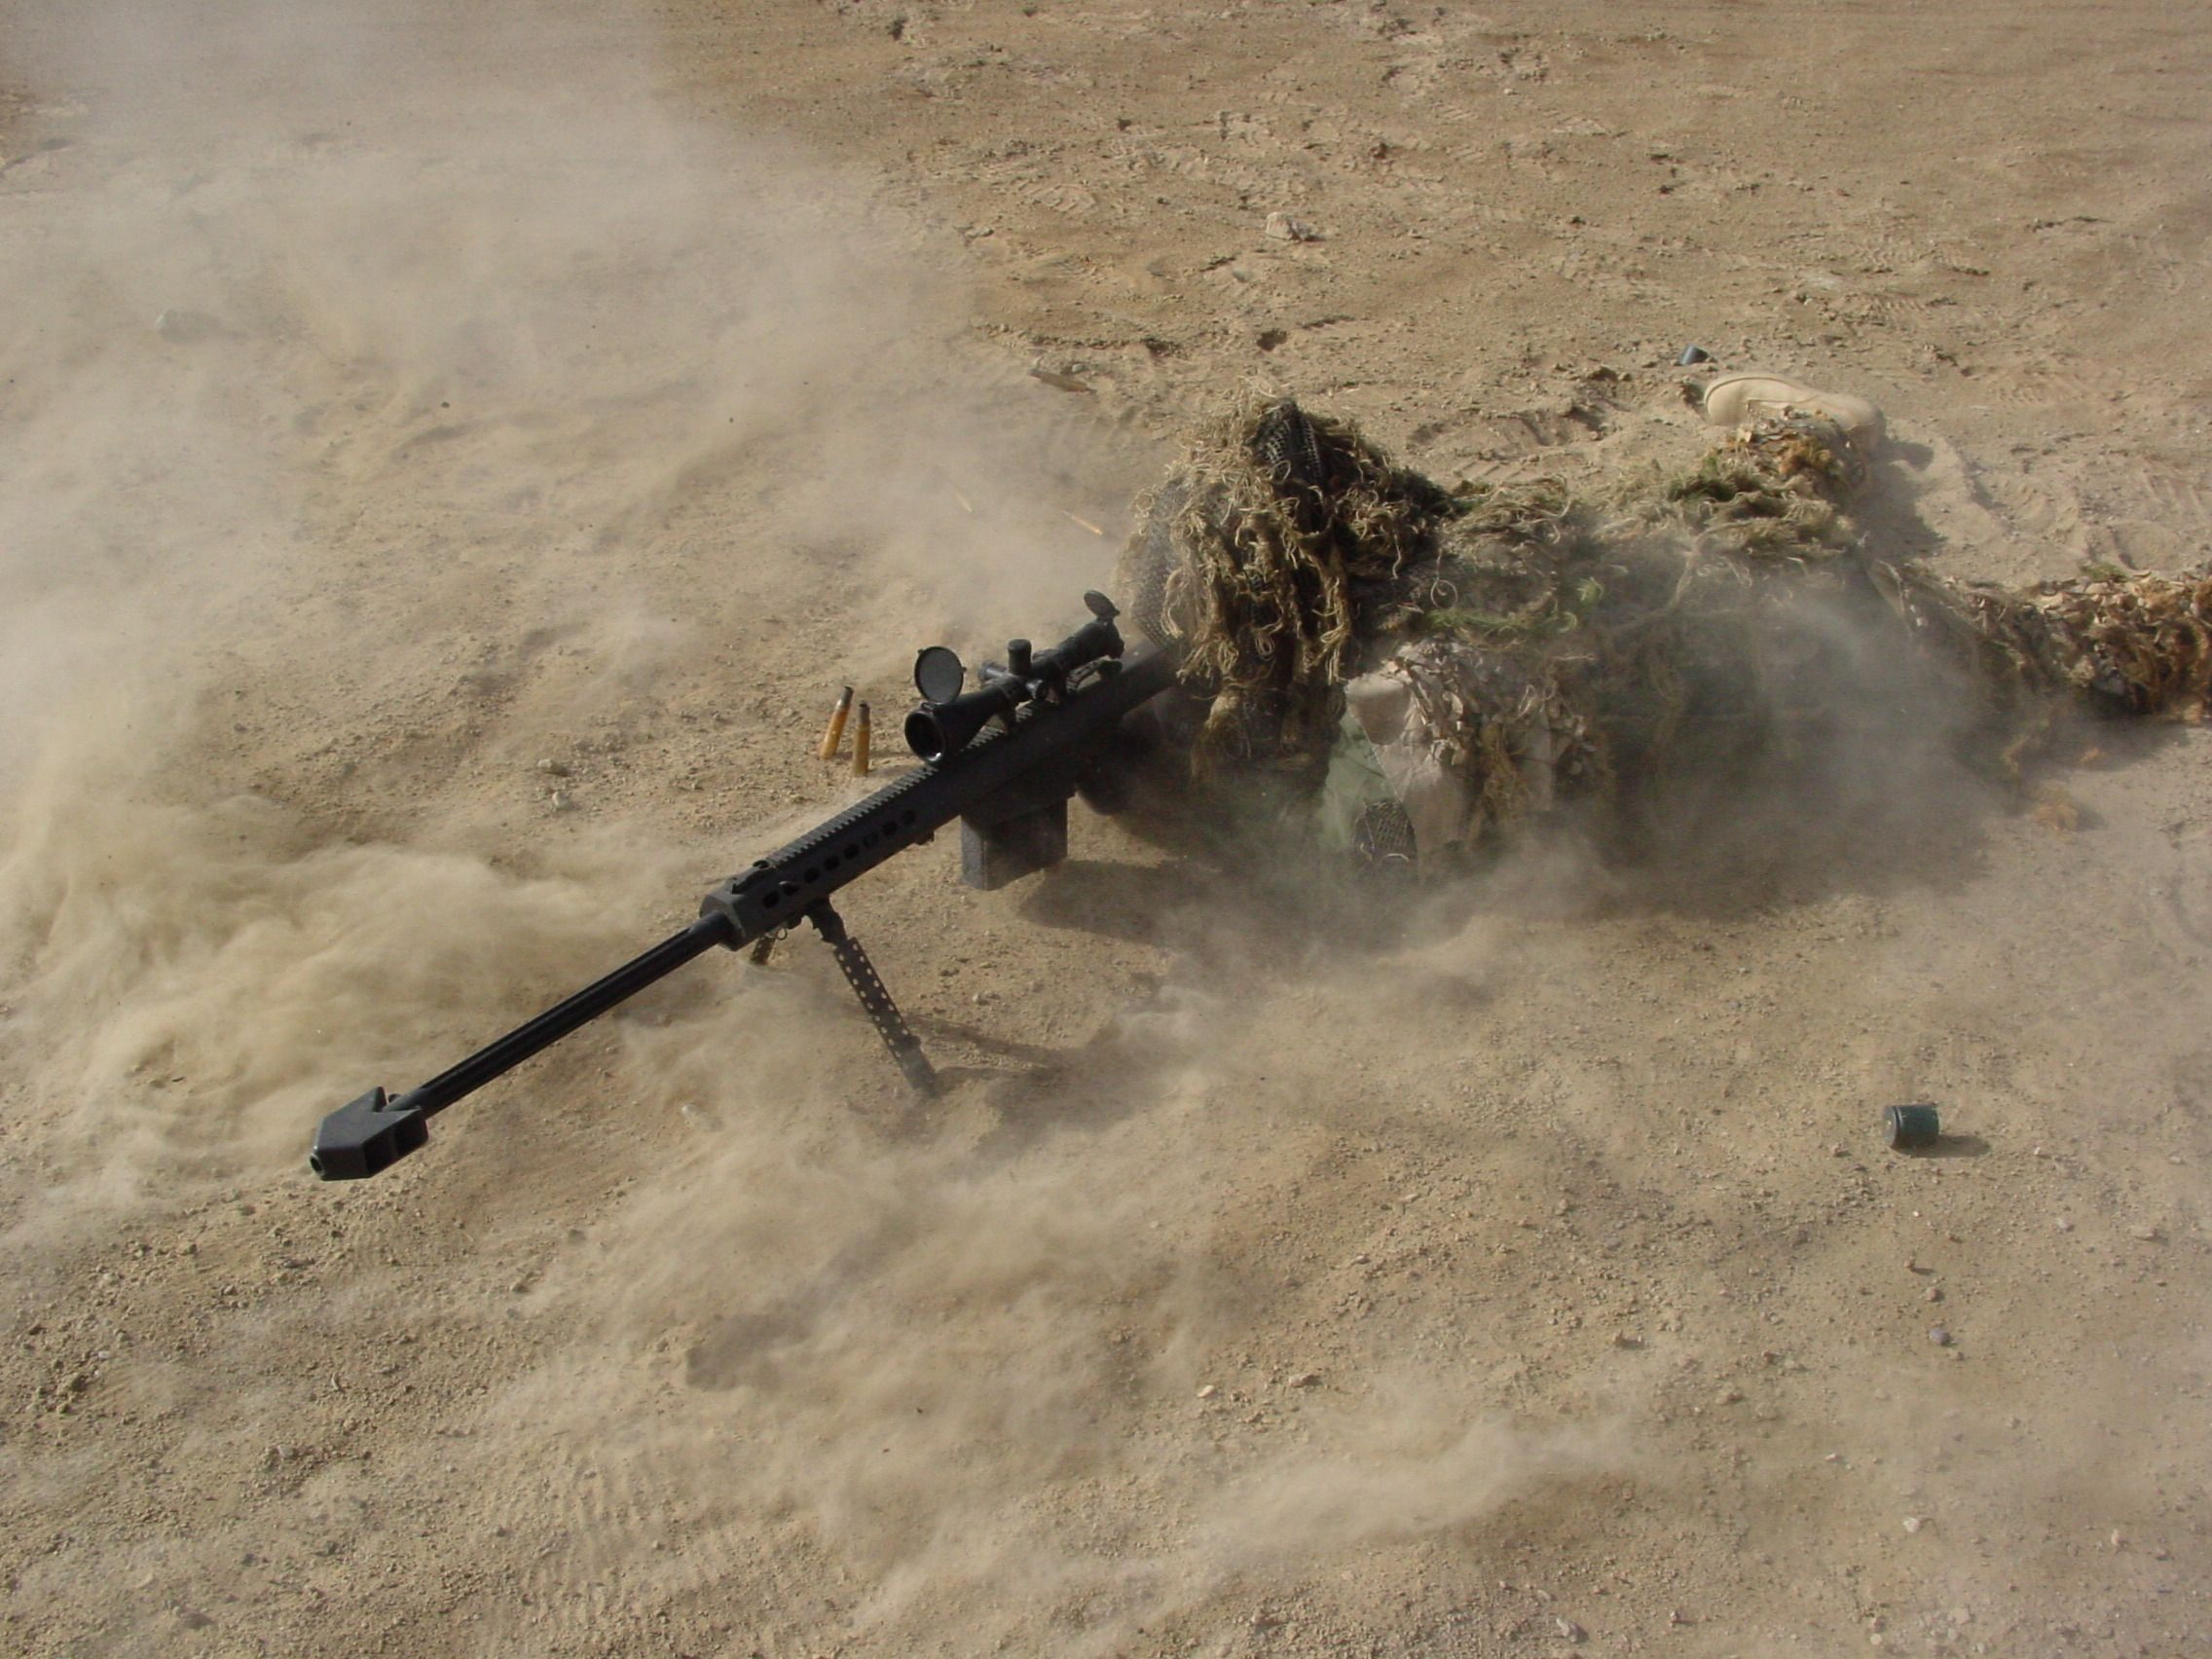 Soldiers Army Military Snipers Barrett M107 Ghillie Suit Wallpaper 606246 Wallbase Cc Military Wallpaper Sniper Camo Wallpaper